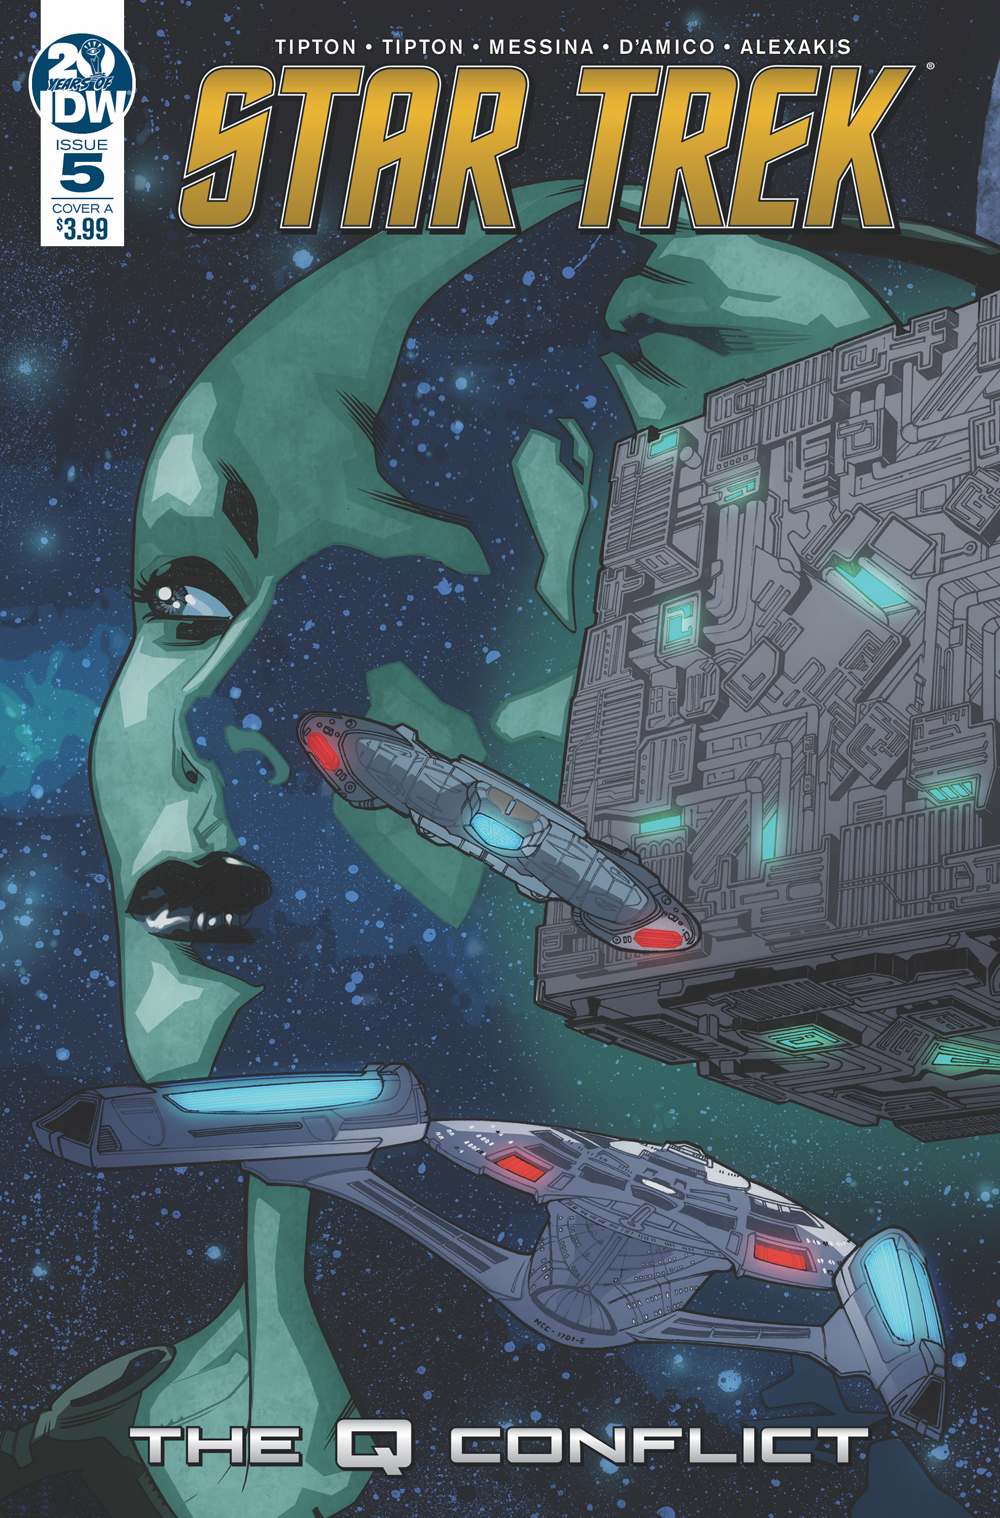 STAR TREK Q CONFLICT #5 (OF 6) CVR A MESSINA